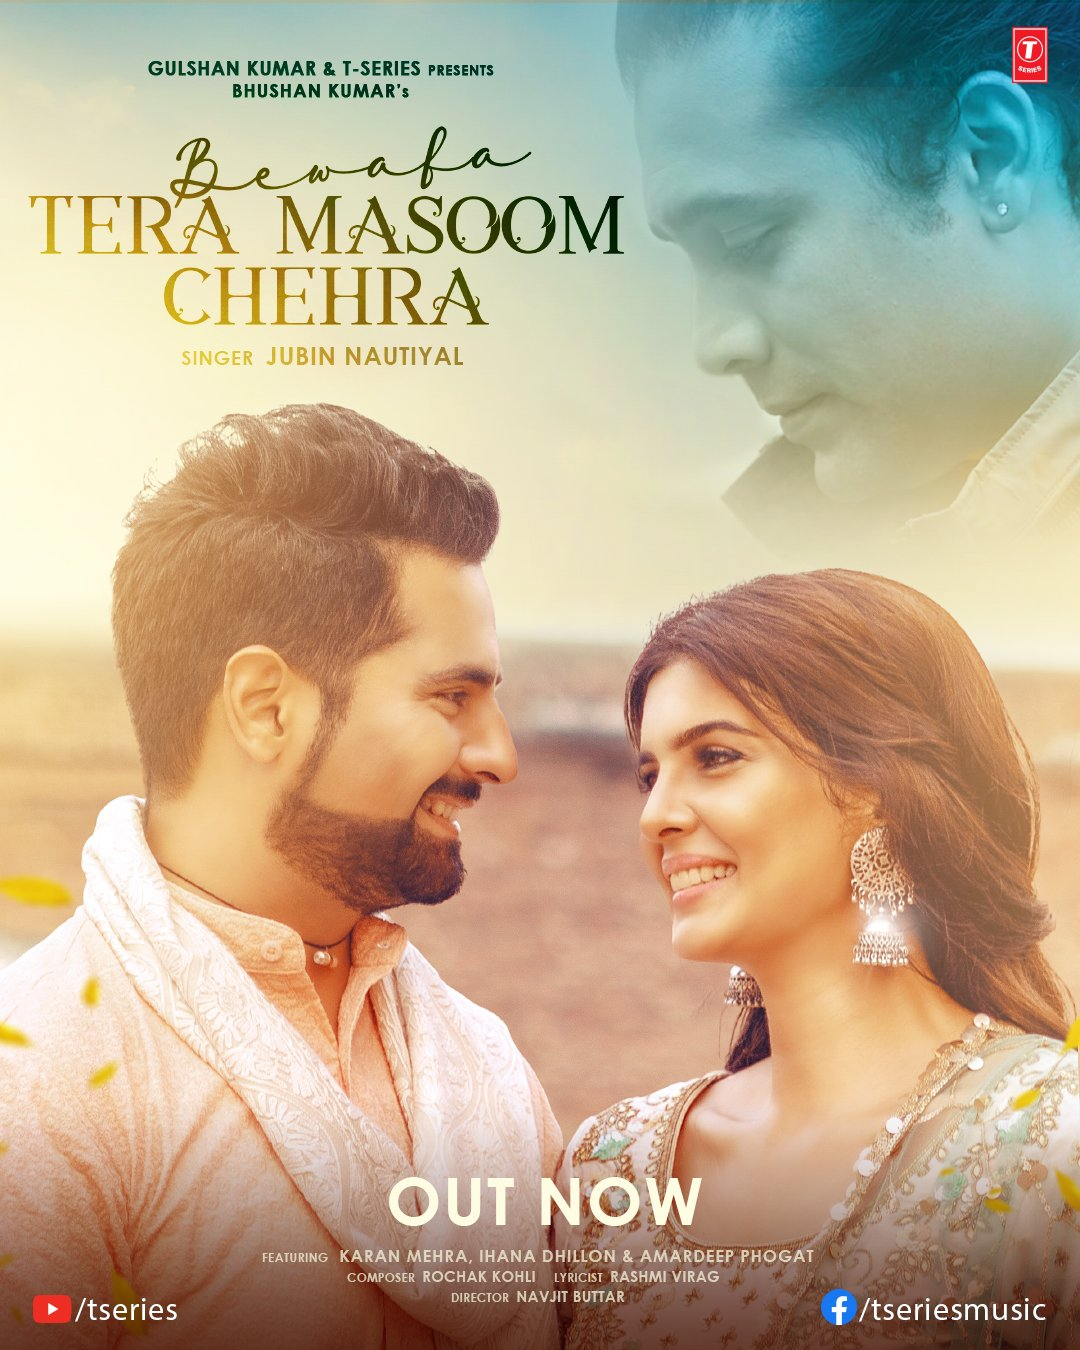 Bewafa Tera Masoom Chehra By Jubin Nautiyal 2020 Hindi Music Video 1080p HDRip 52MB Download